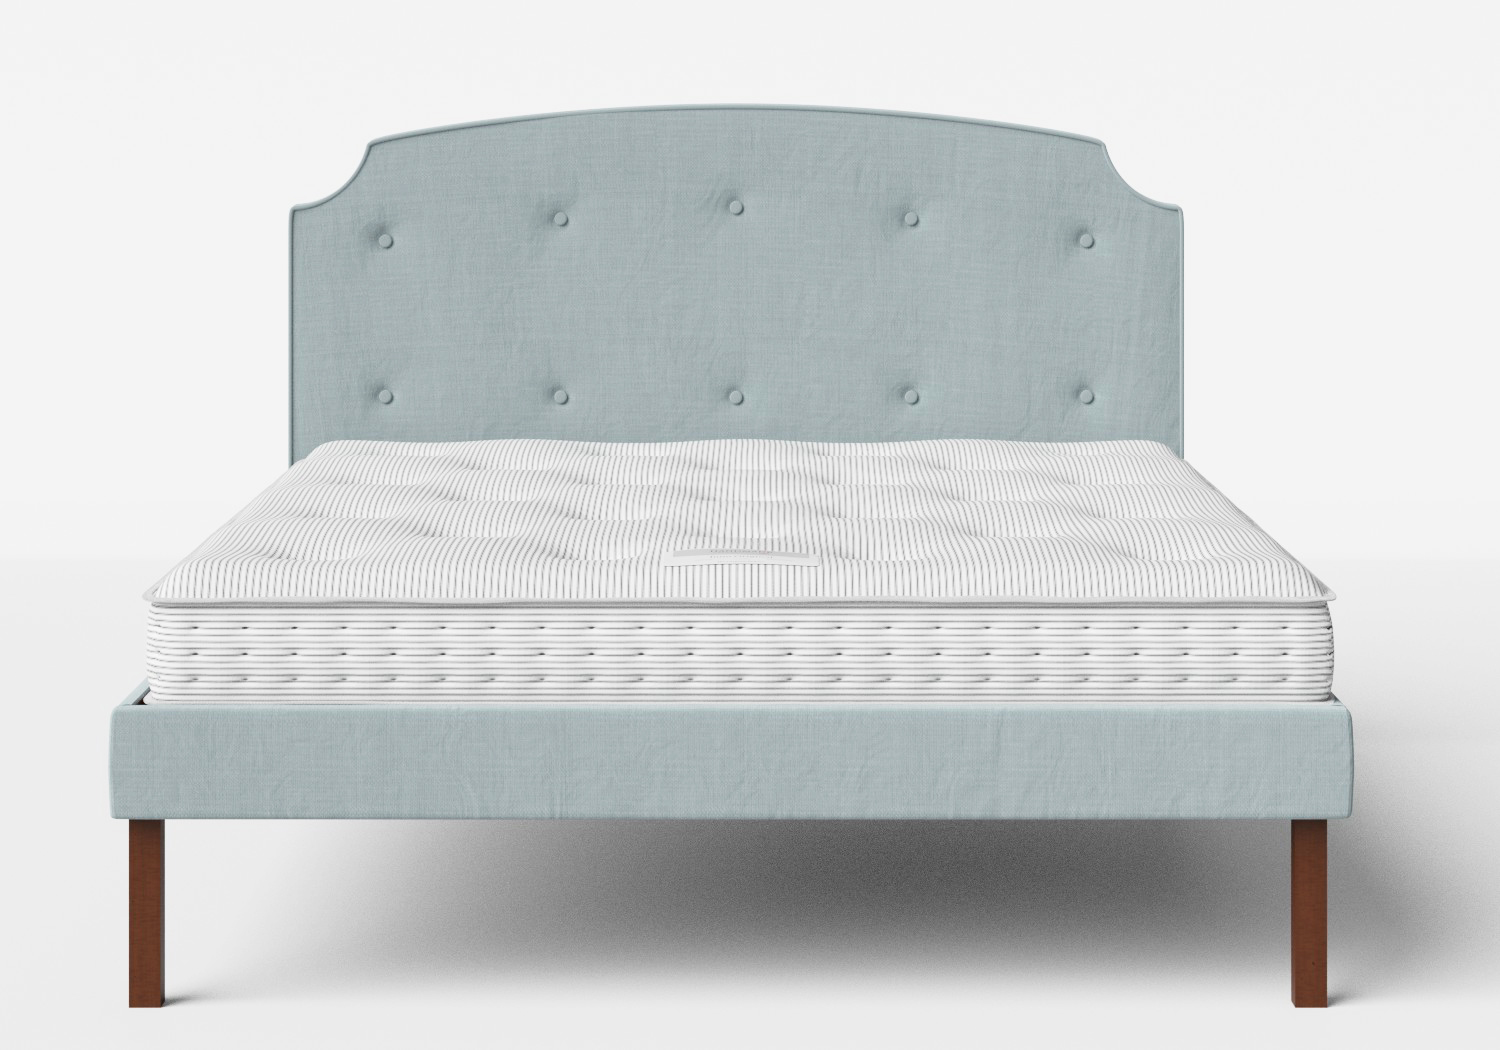 Kobe Upholstered Bed in Wedgewood fabric with buttoning shown with Juno 1 mattress